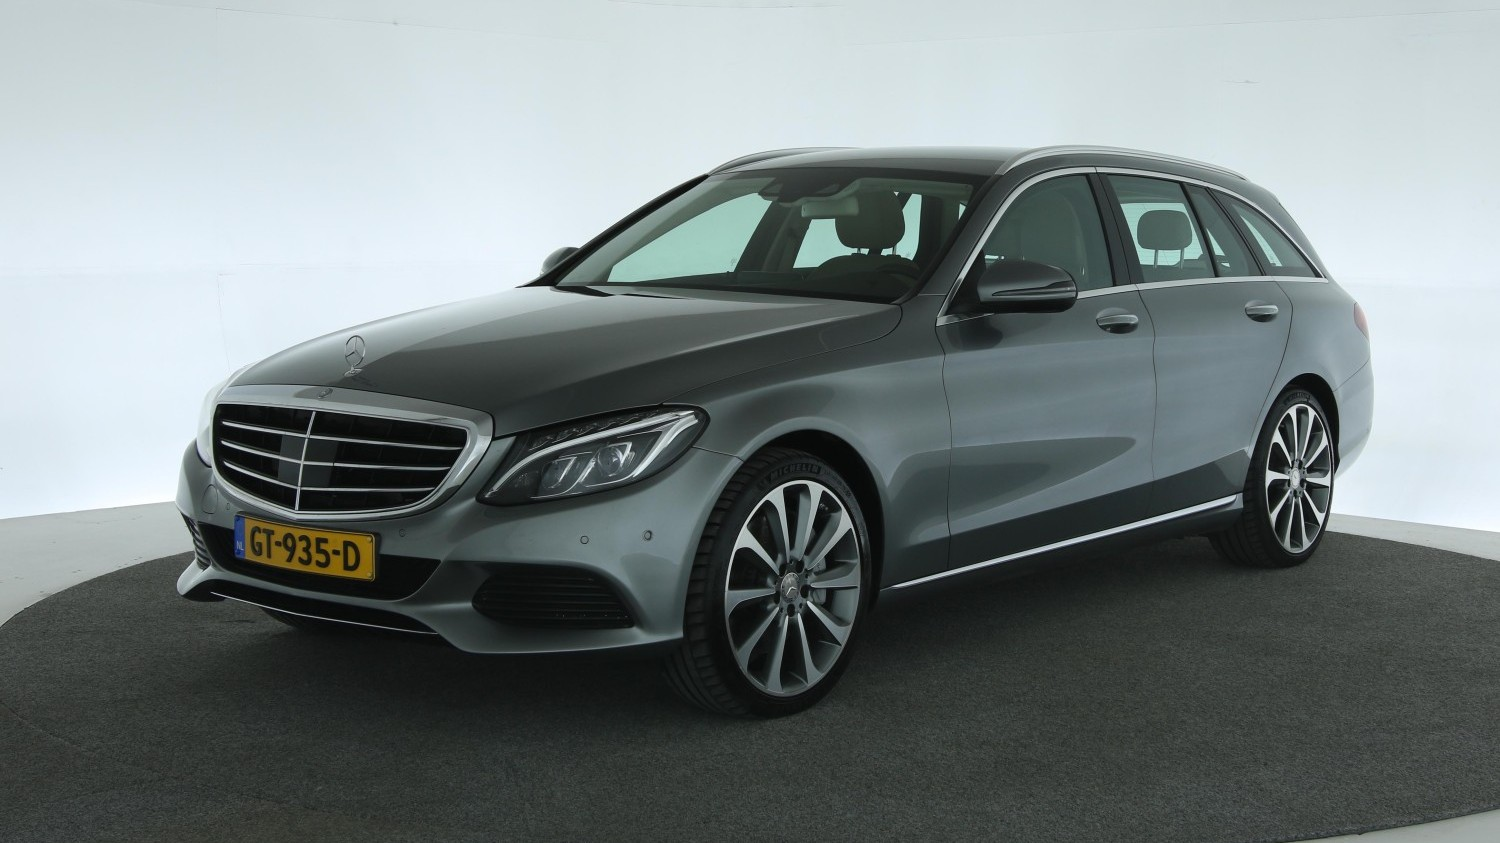 Mercedes-Benz C-klasse Station 2015 GT-935-D 1